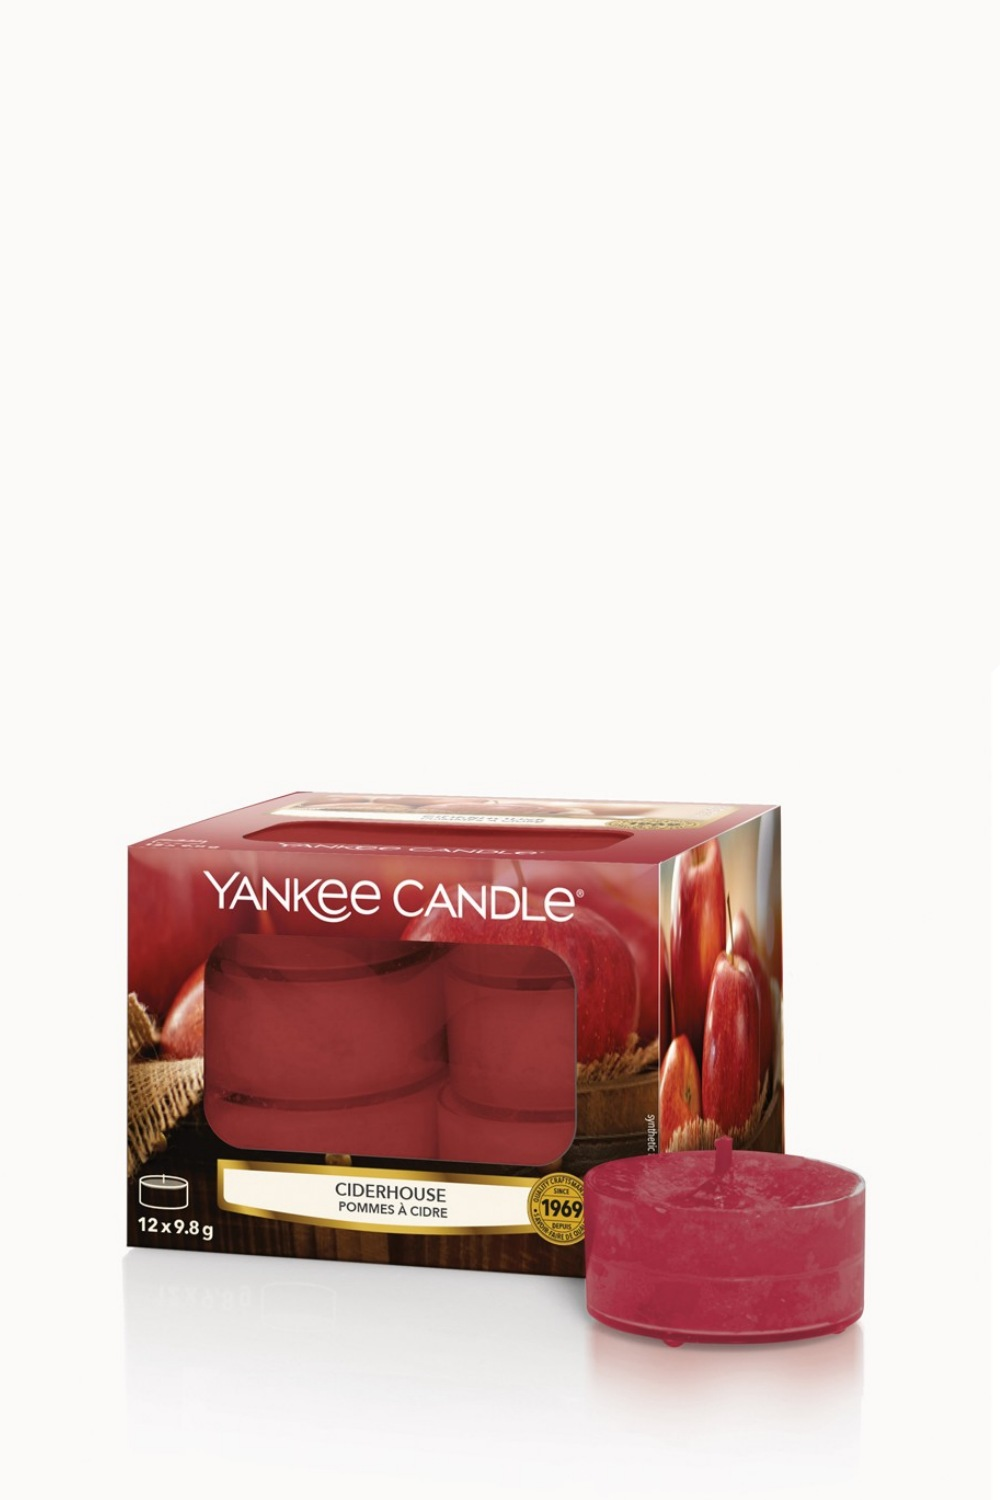 Yankee Candle red fragrant tea candles Ciderhouse